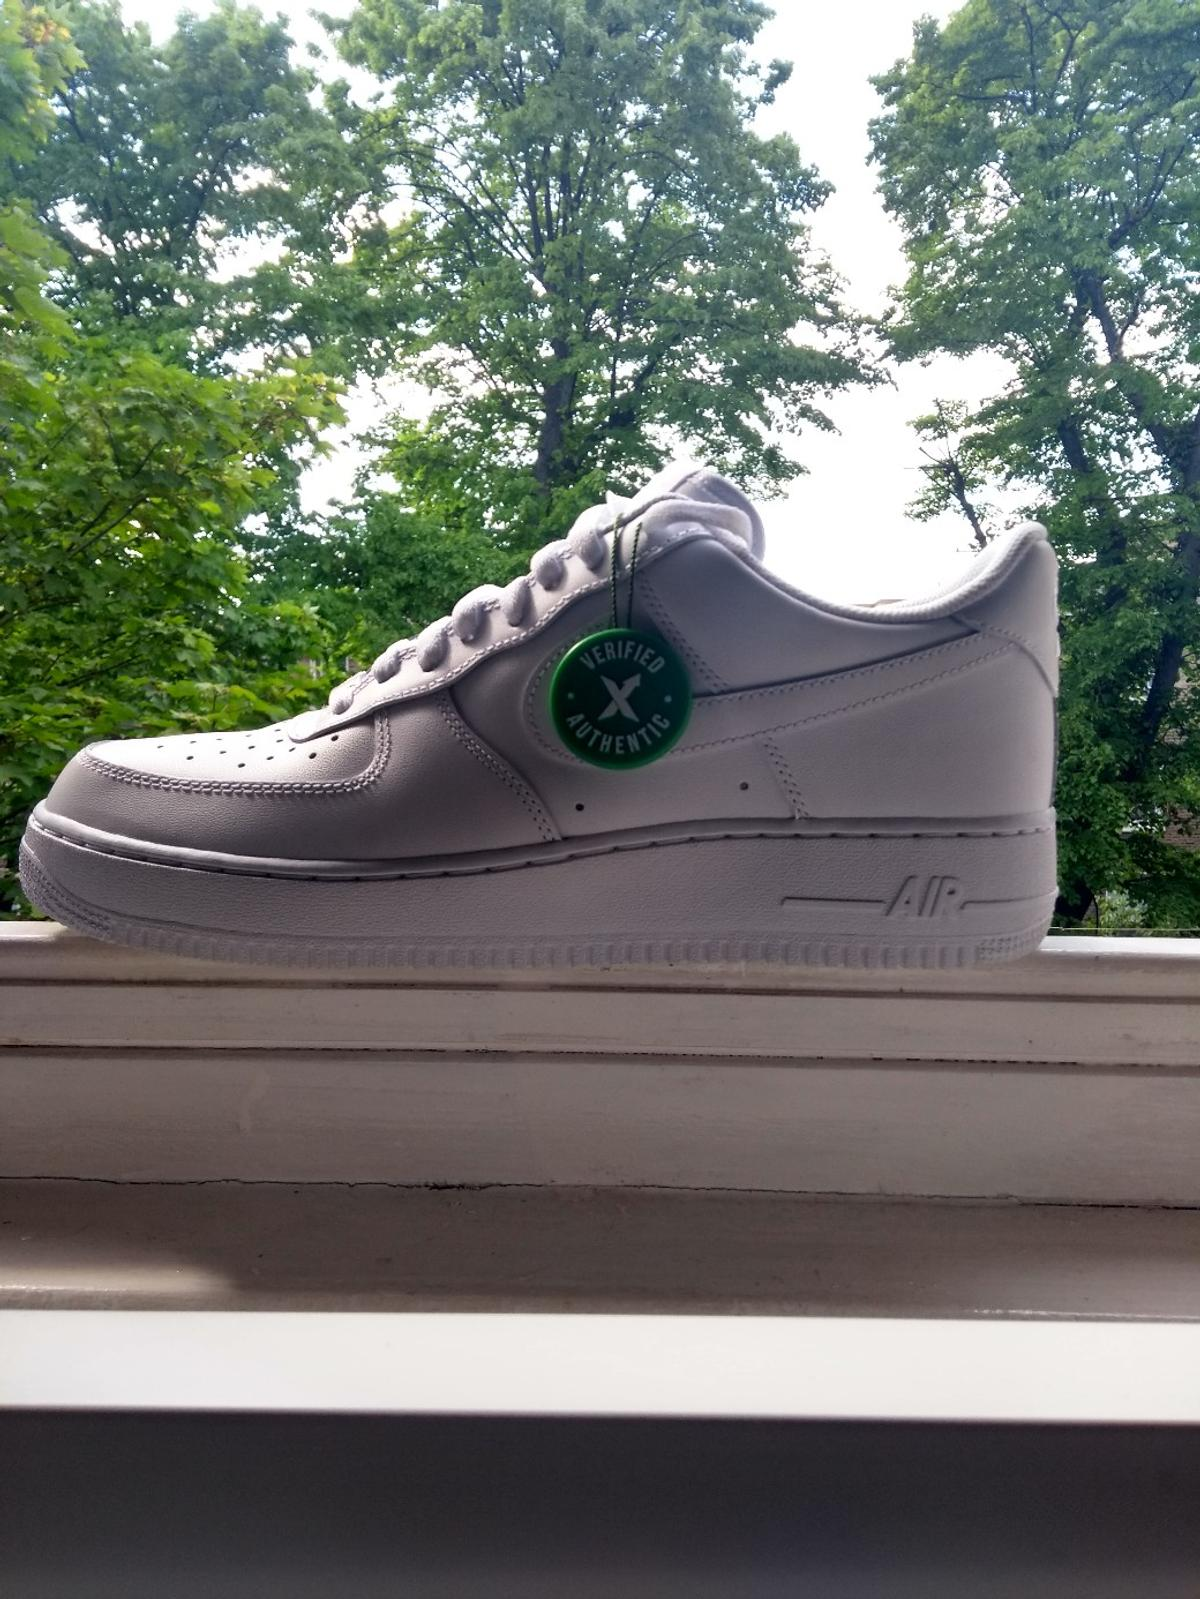 6631cb92 Nike Air Force 1 Brand New With Box StockX Verified Authentic Tag Reason  For Sale: ...